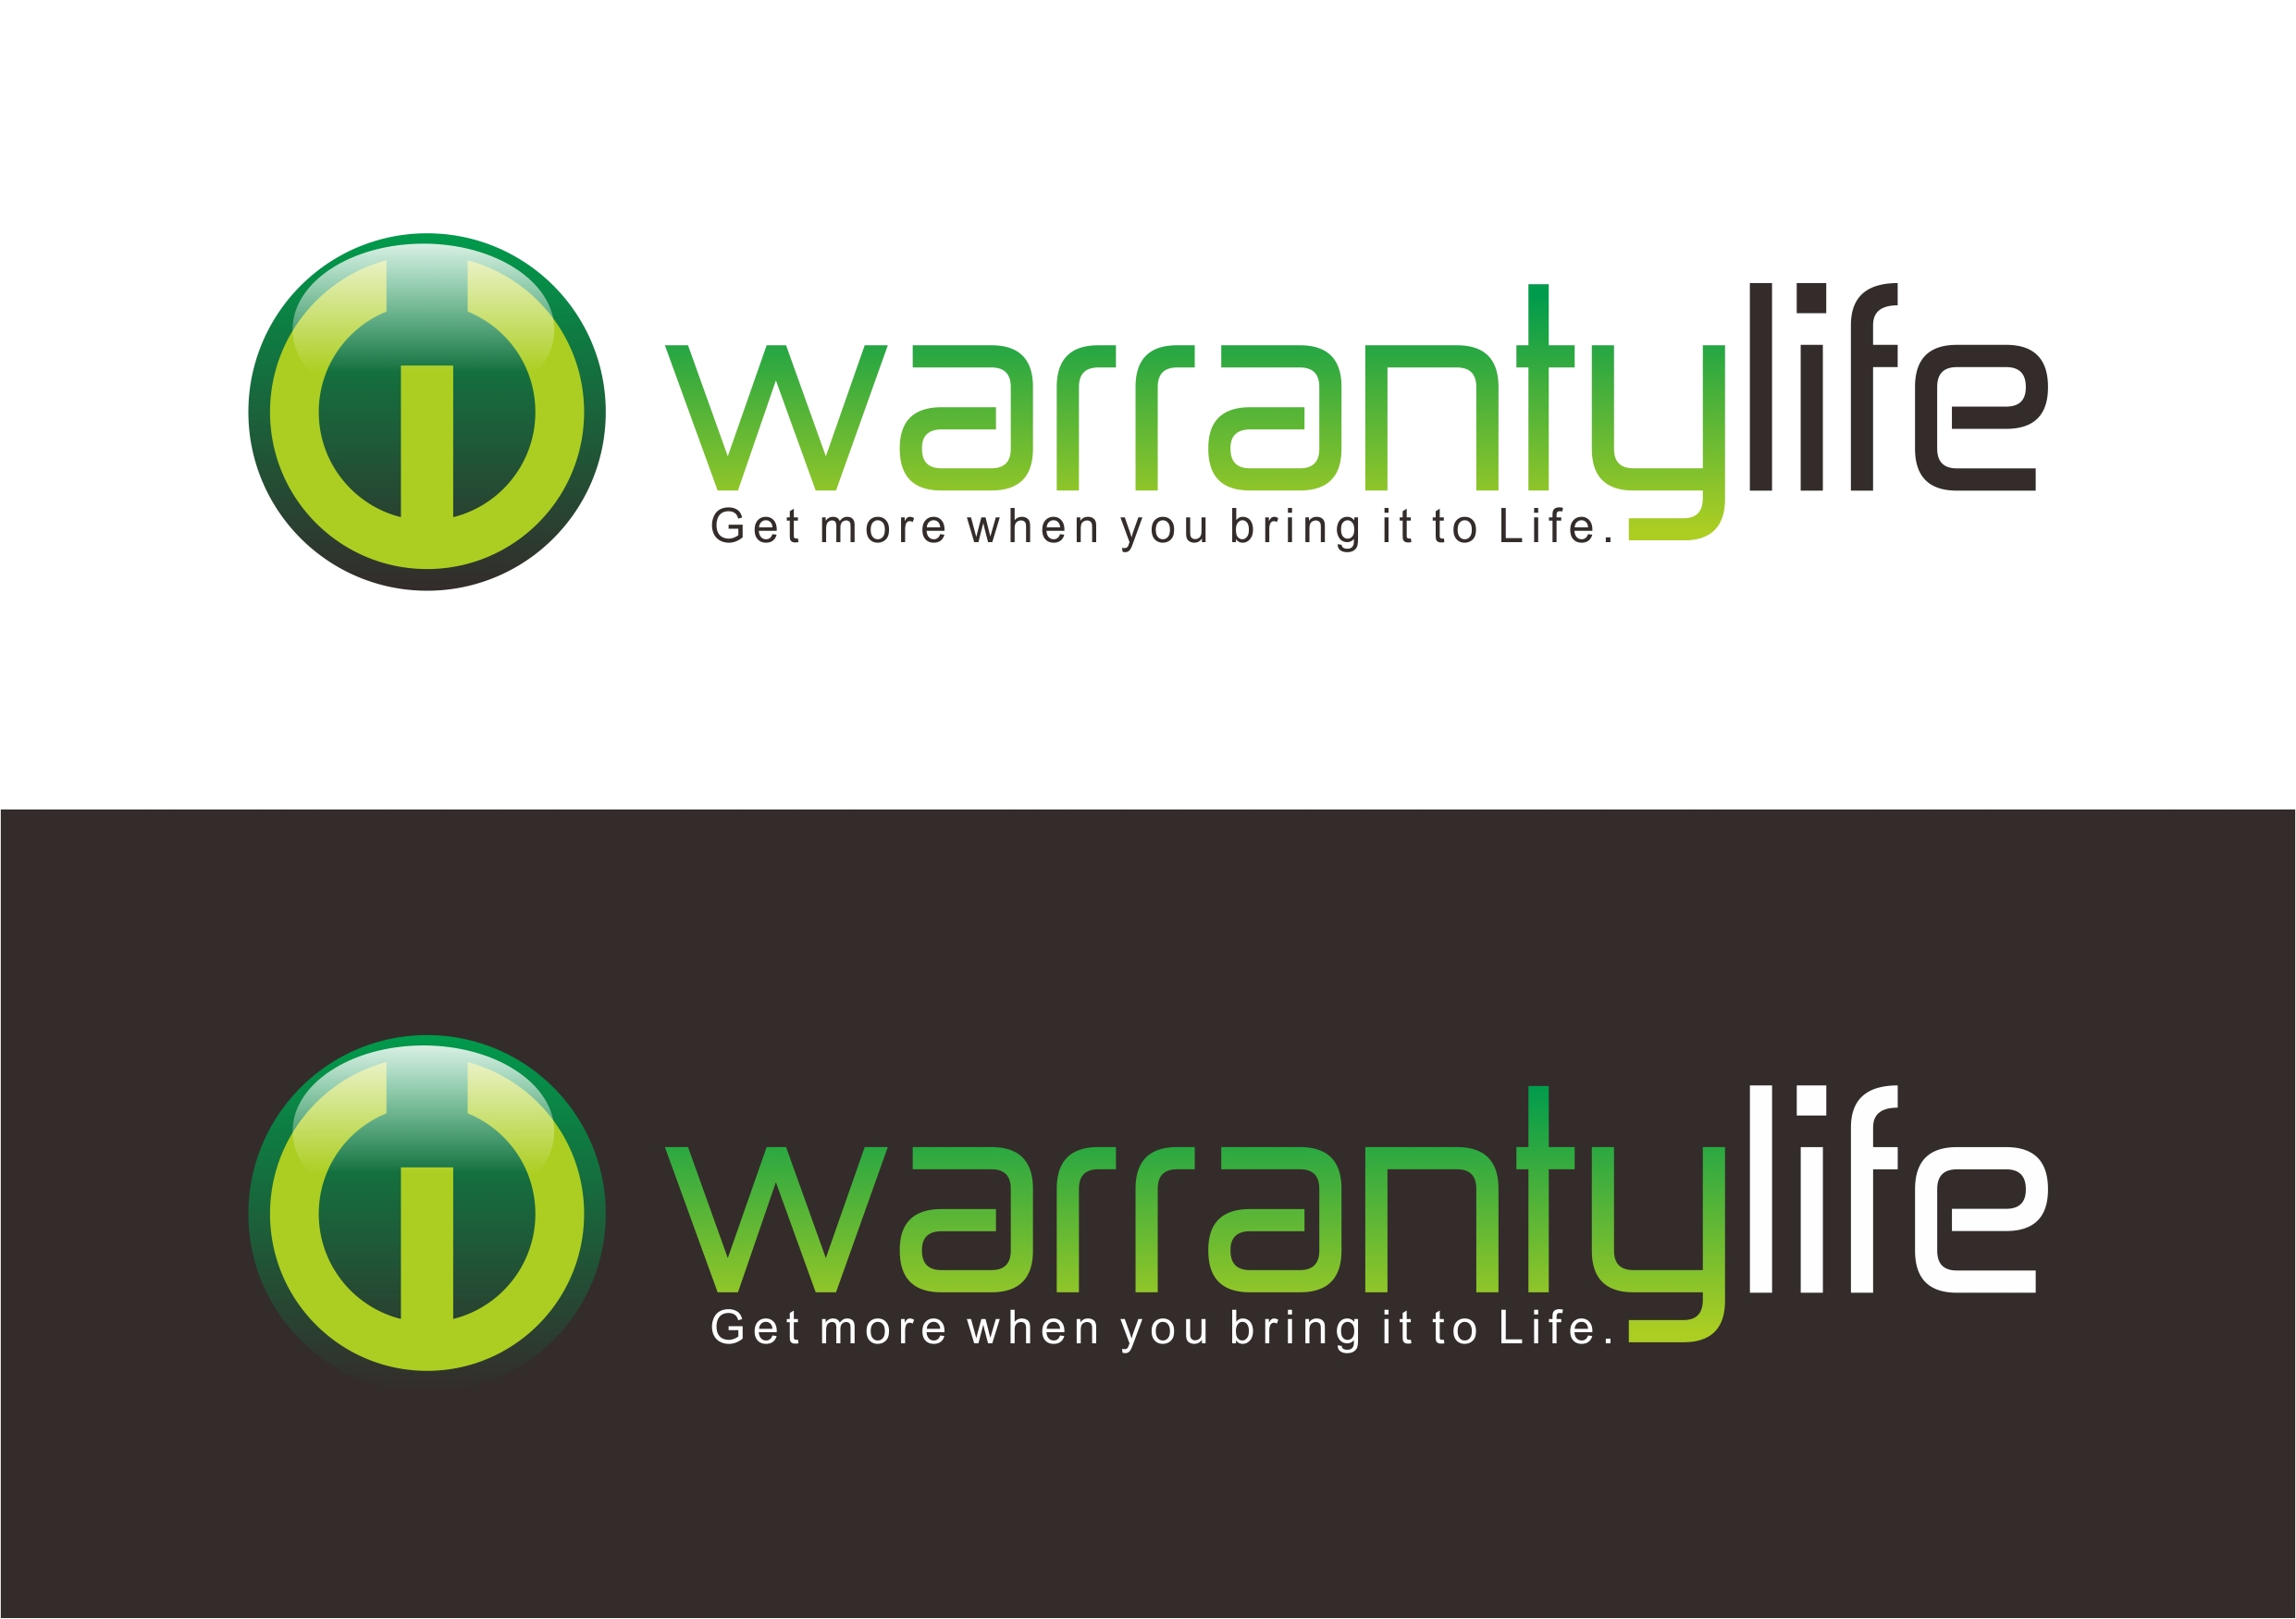 Logo Design by Teguh Mudjianto - Entry No. 13 in the Logo Design Contest WarrantyLife Logo Design.